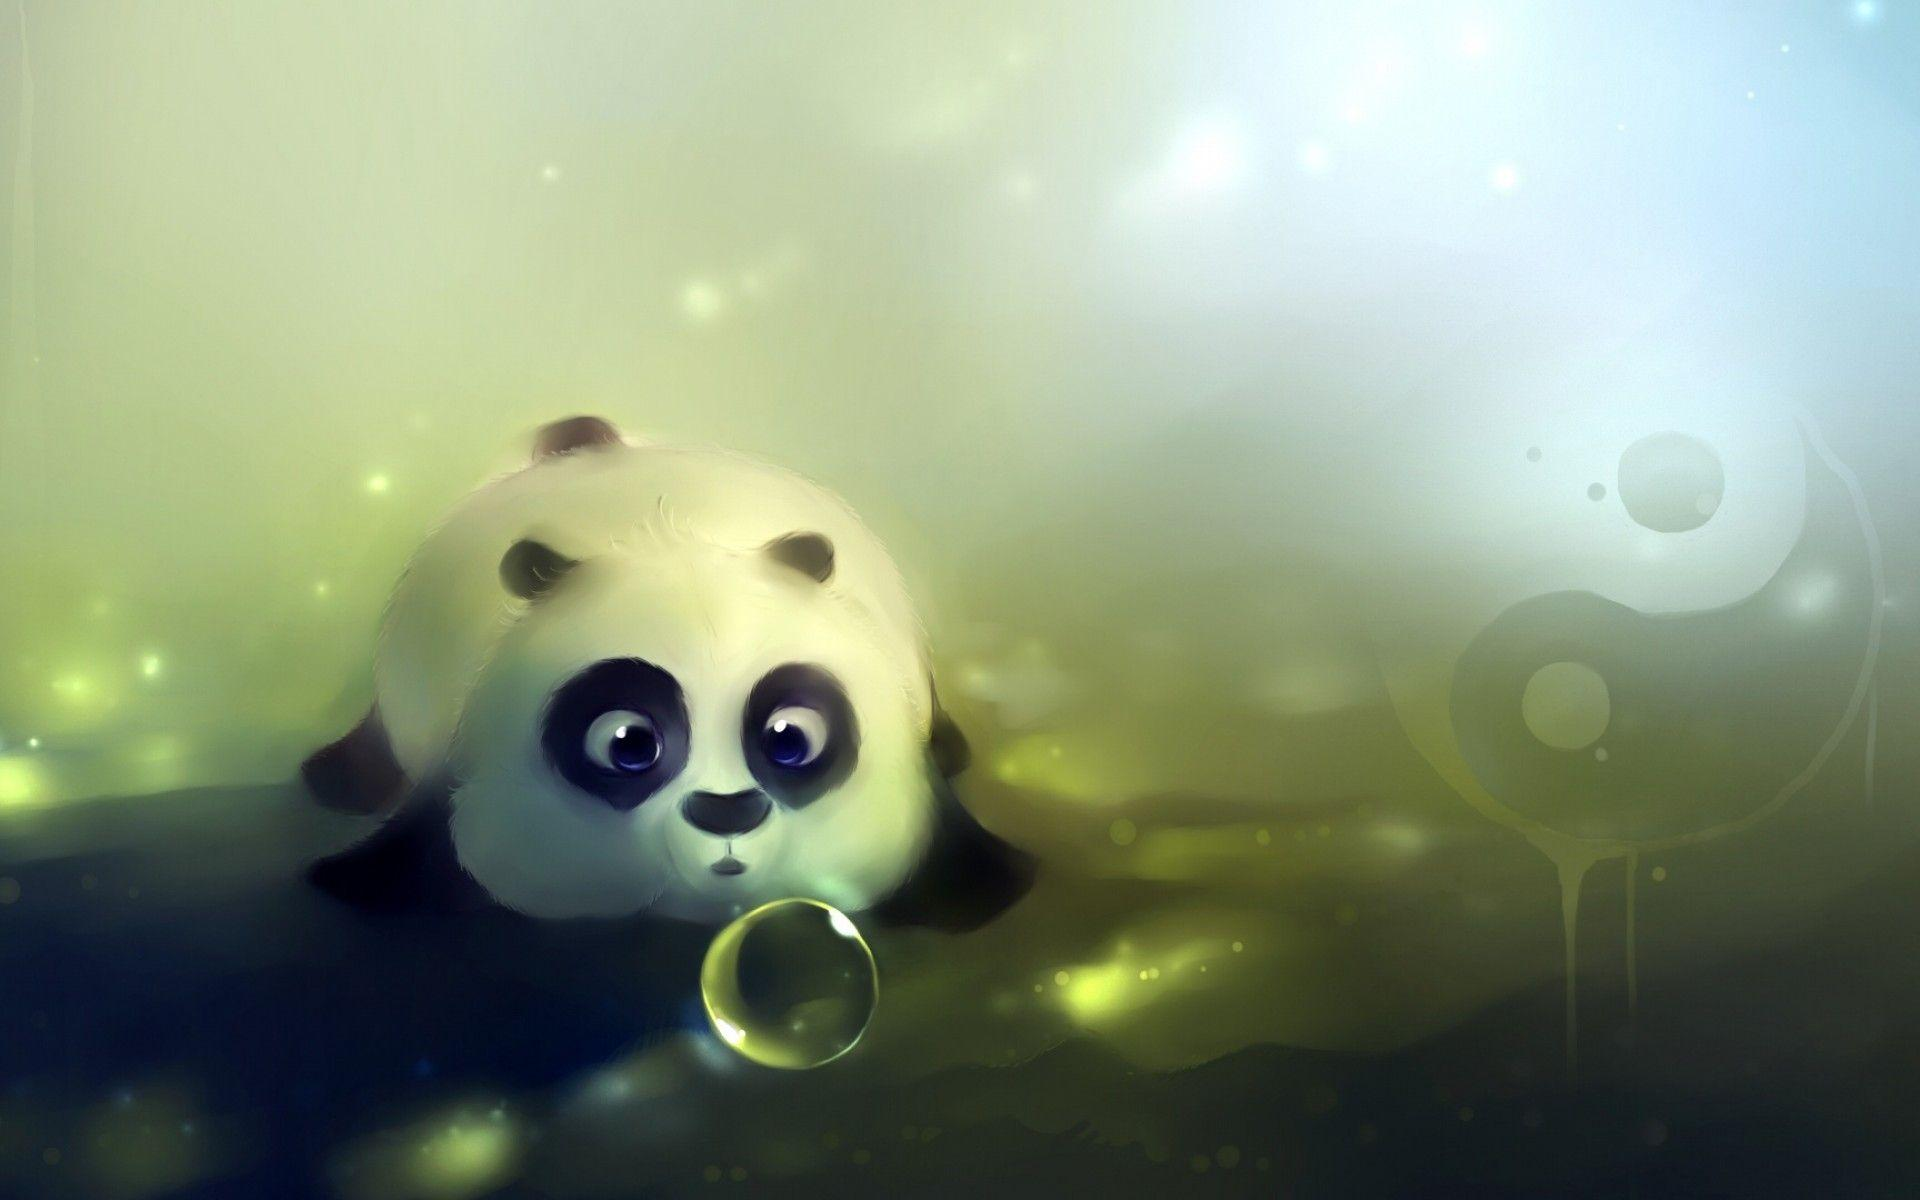 cute wallpapers hd - wallpaper cave